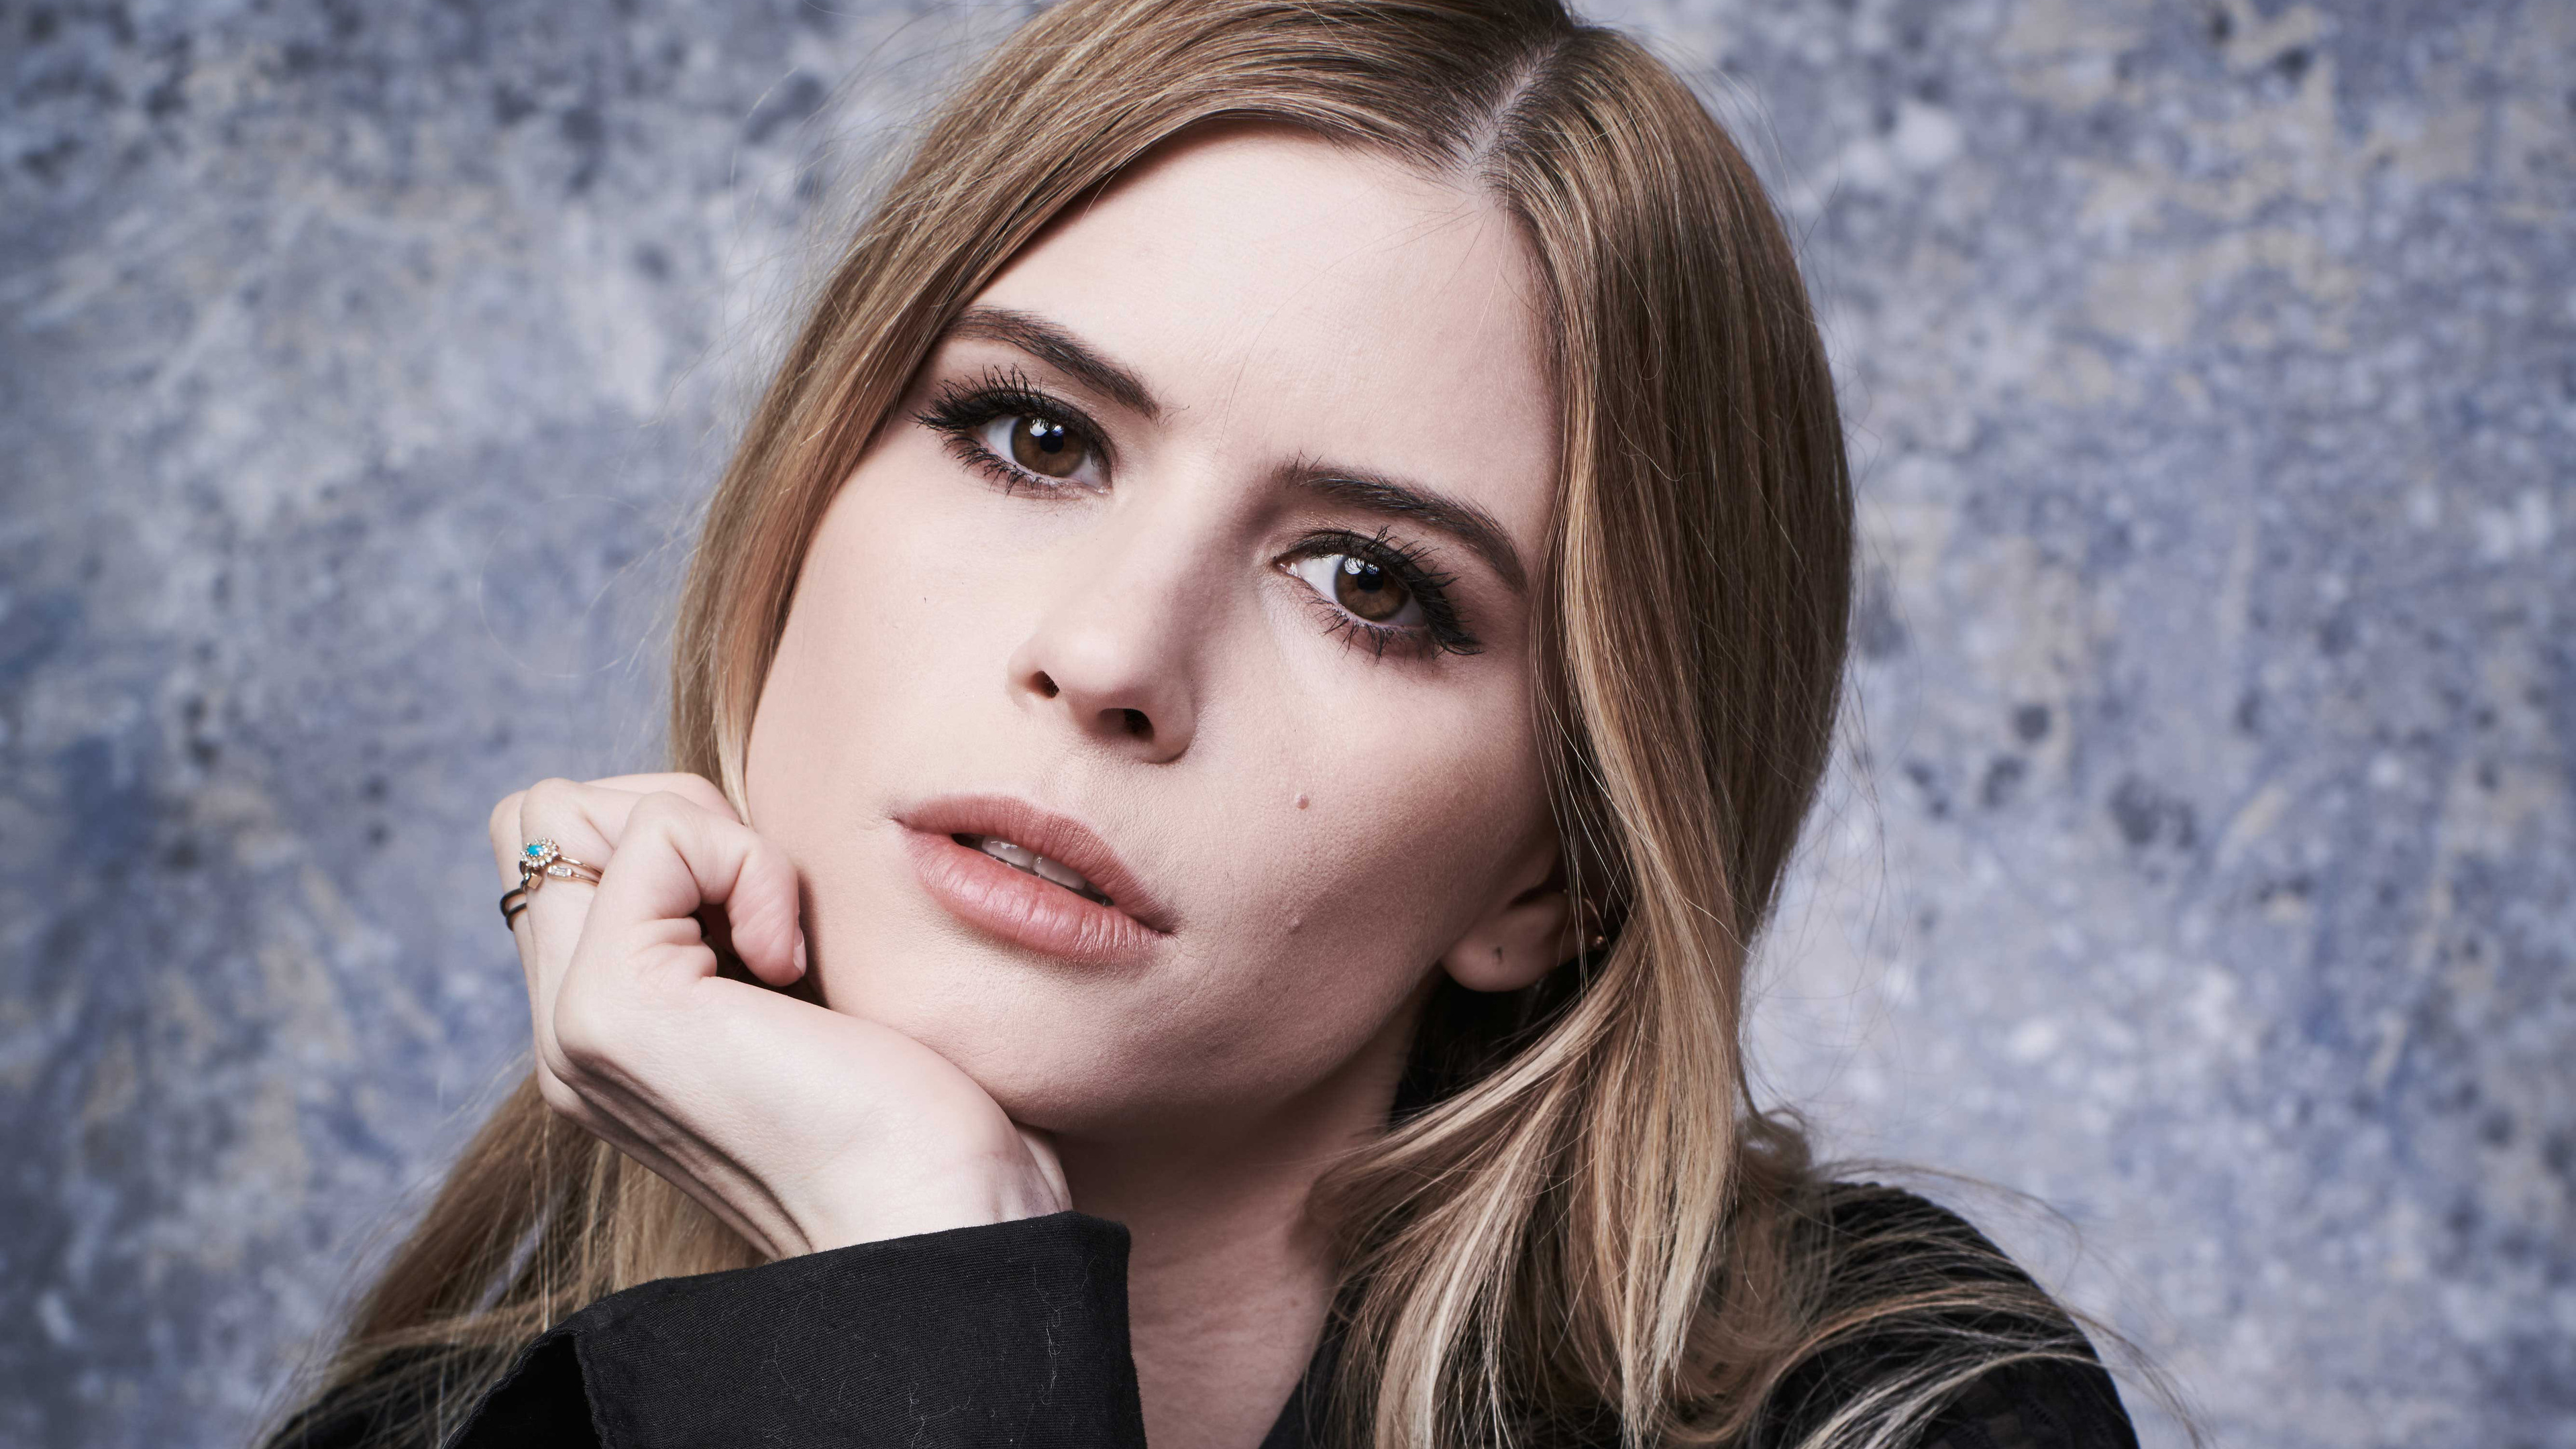 carlson young 1536862921 - Carlson Young - hd-wallpapers, girls wallpapers, celebrities wallpapers, carlson young wallpapers, 5k wallpapers, 4k-wallpapers